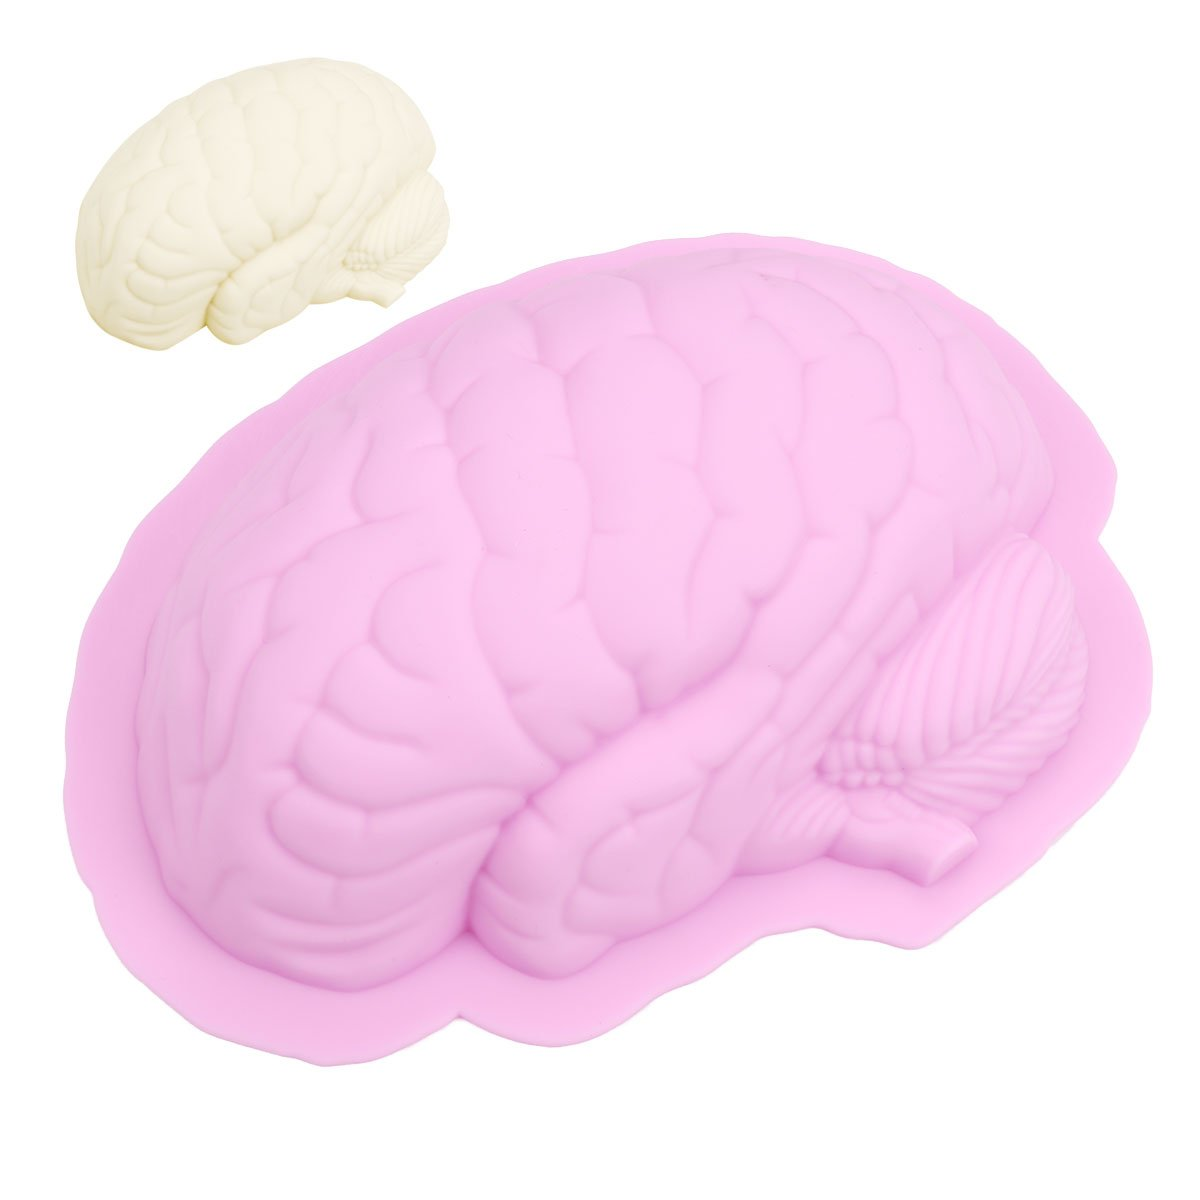 Freebily 3D Brain Shaped Fondant Cake Silicone Mold Cookies Chocolate Mould Party Favors Kitchen DIY Baking Decorating Tools